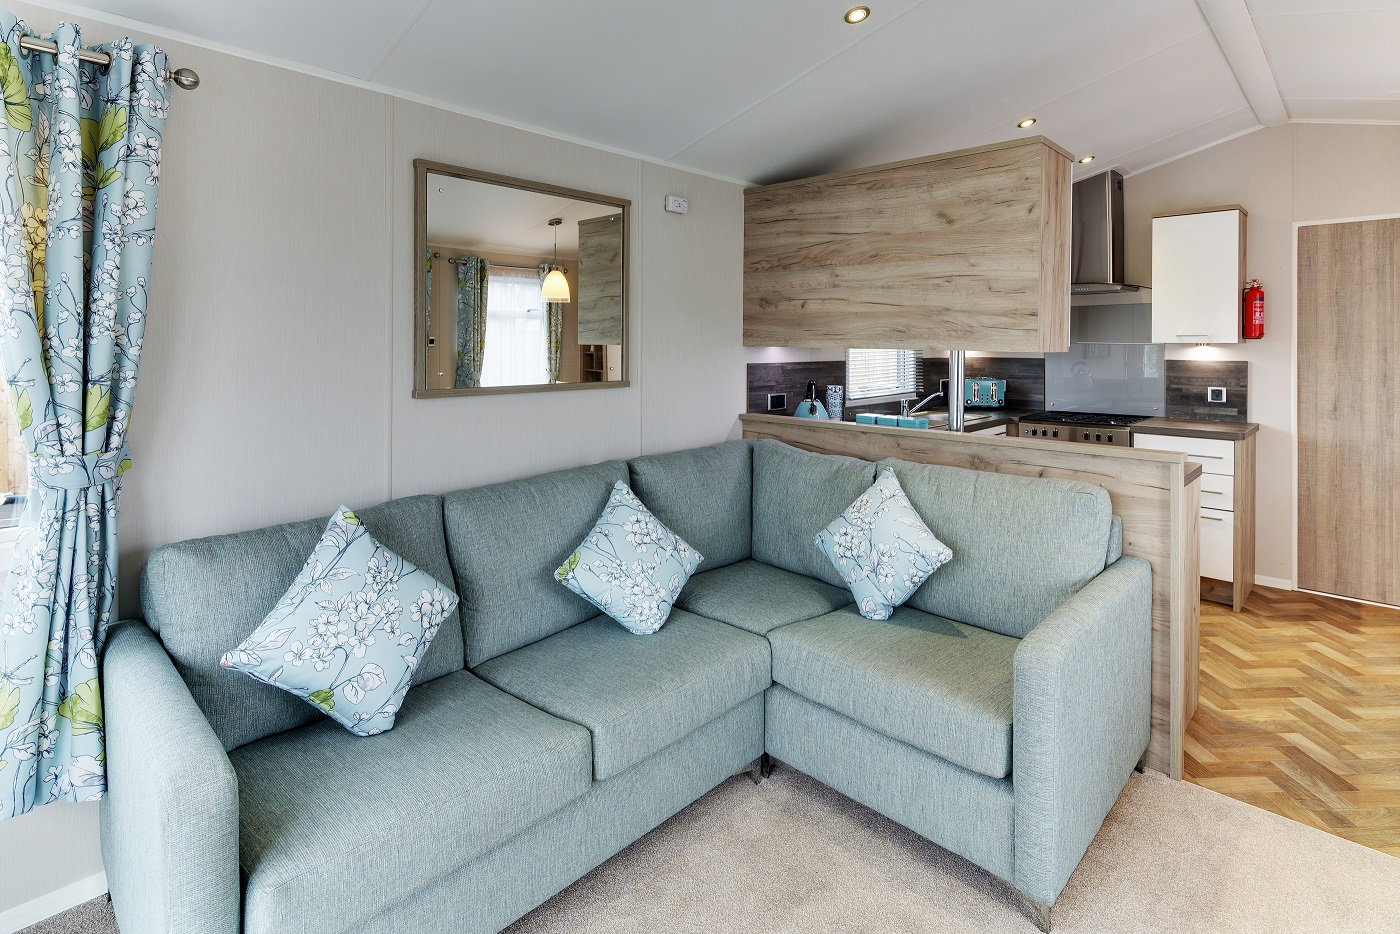 Willerby Canterbury: New Static Caravans and Holiday Homes for Sale, Langley Moor, Durham Large Image 1